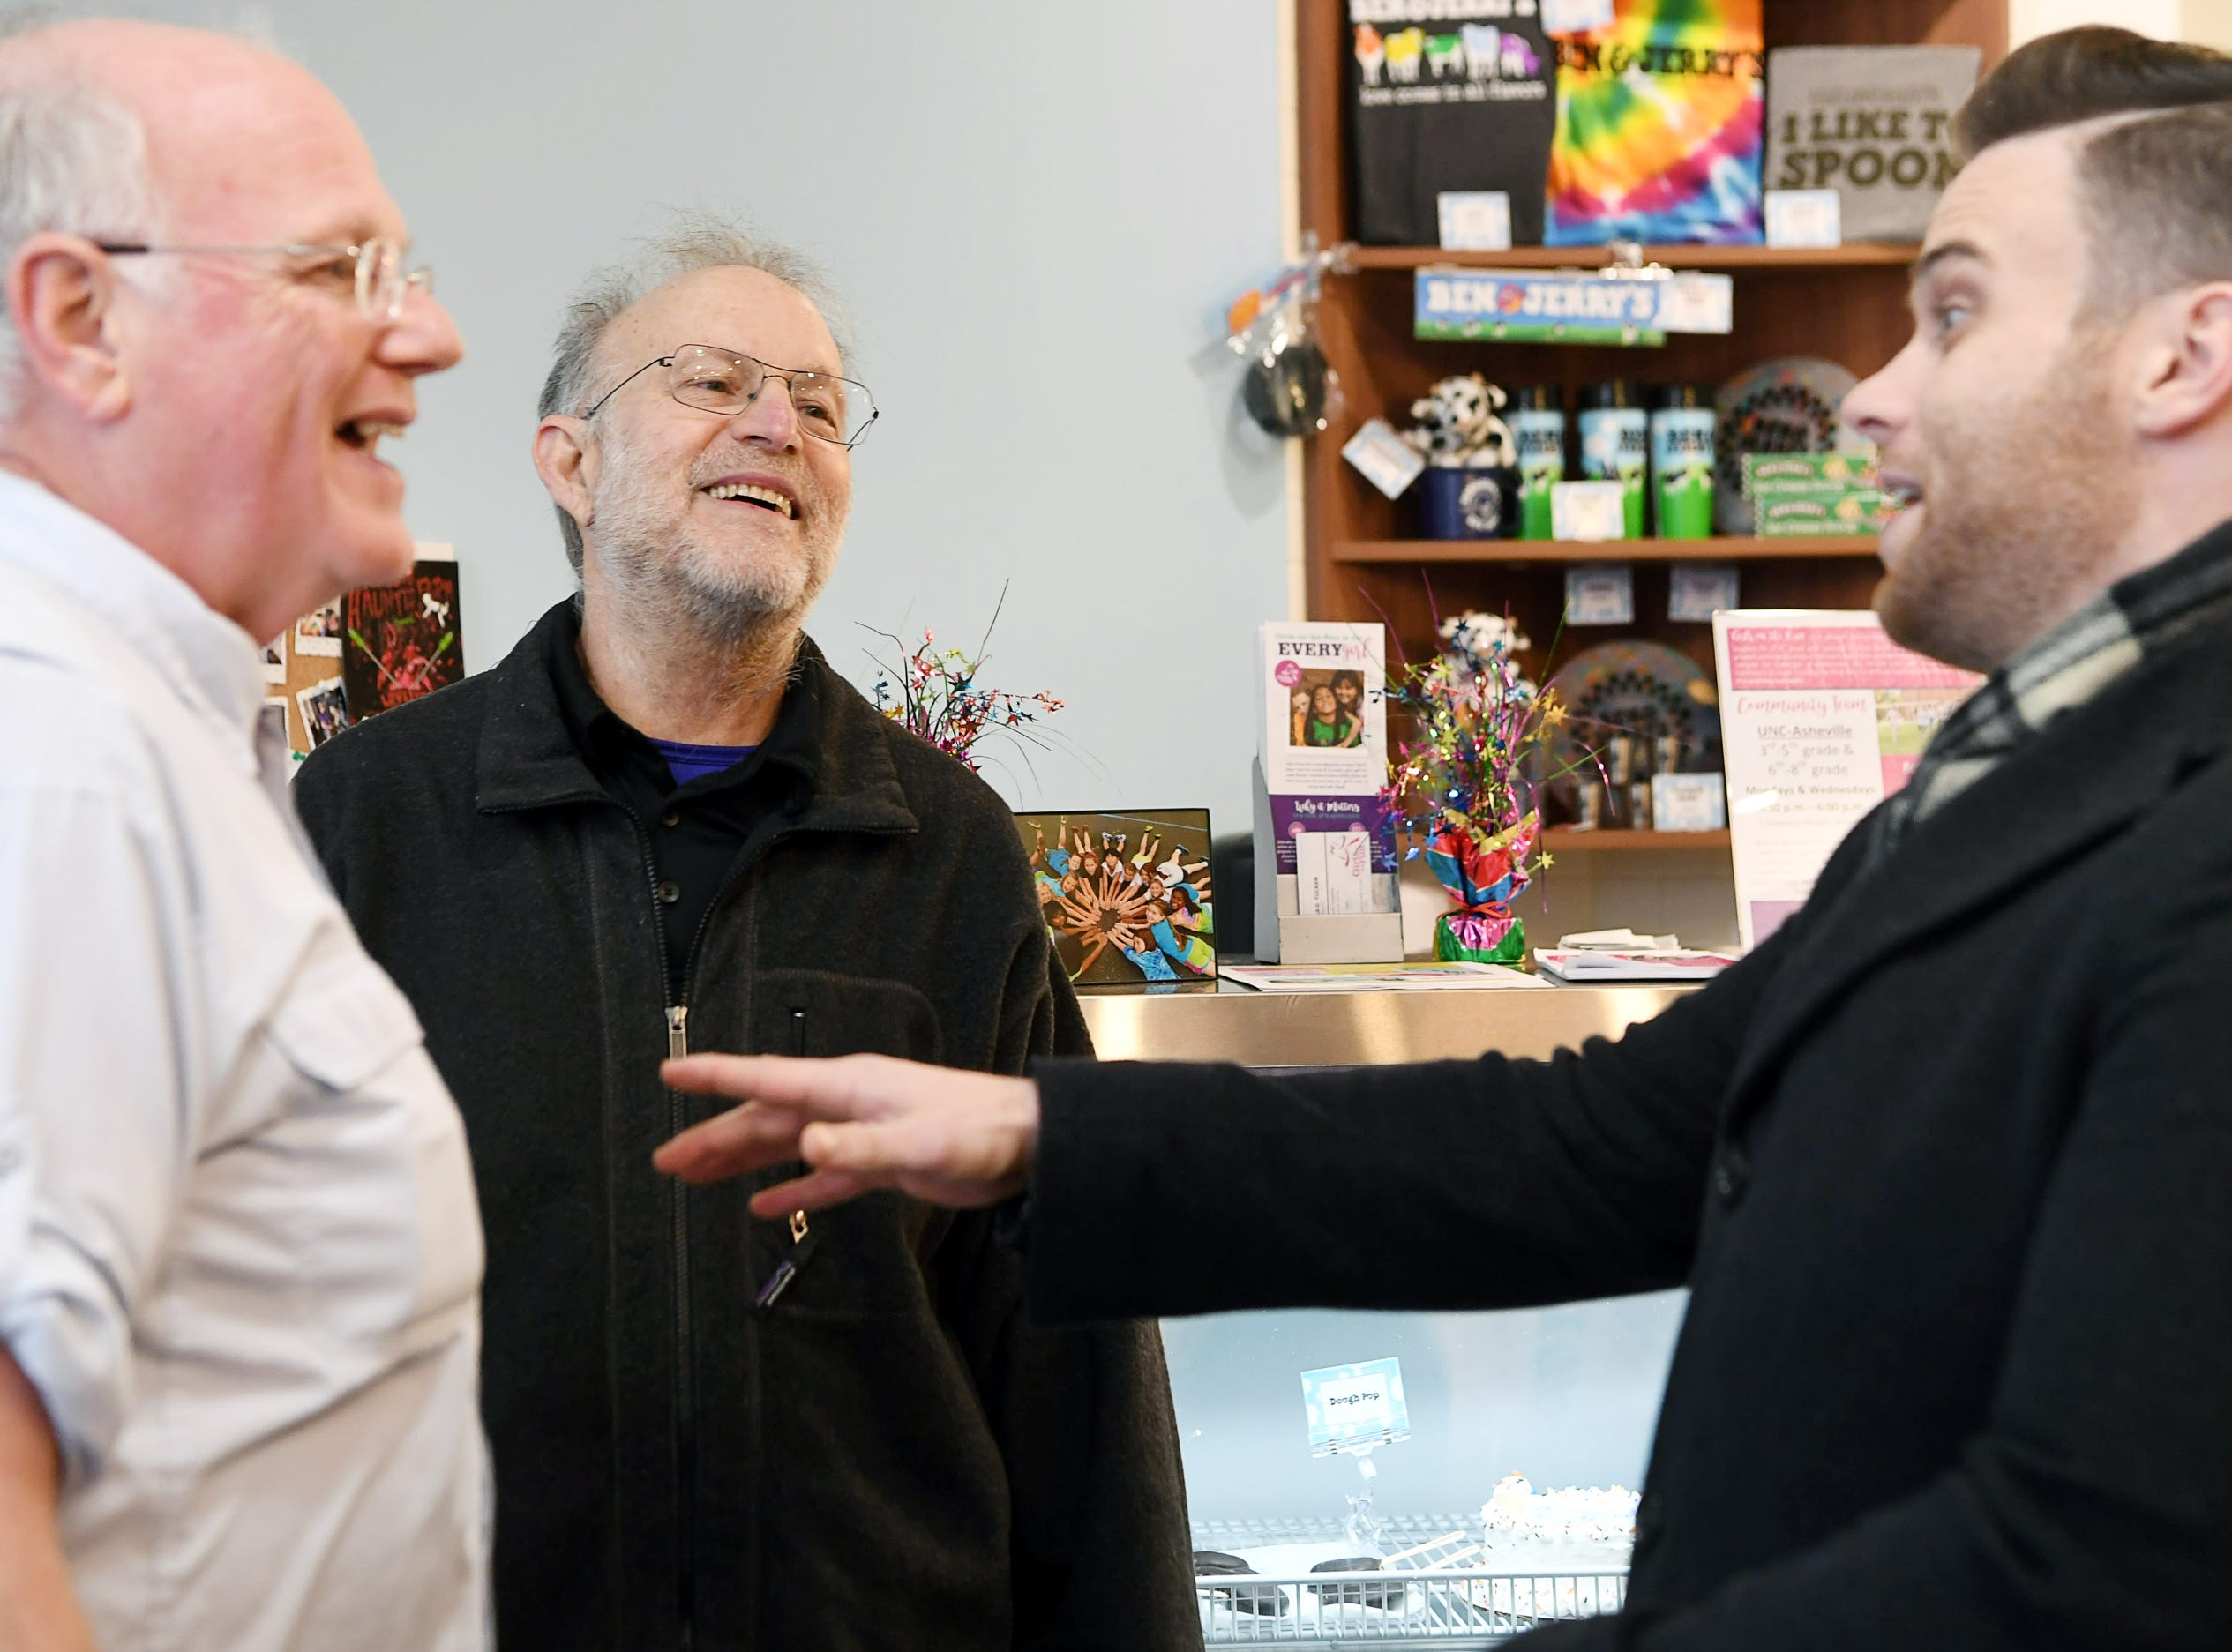 Ben Cohen and Jerry Greenfield, founders of Ben and Jerry's ice cream, met fans in Asheville on Feb. 9, 2019.